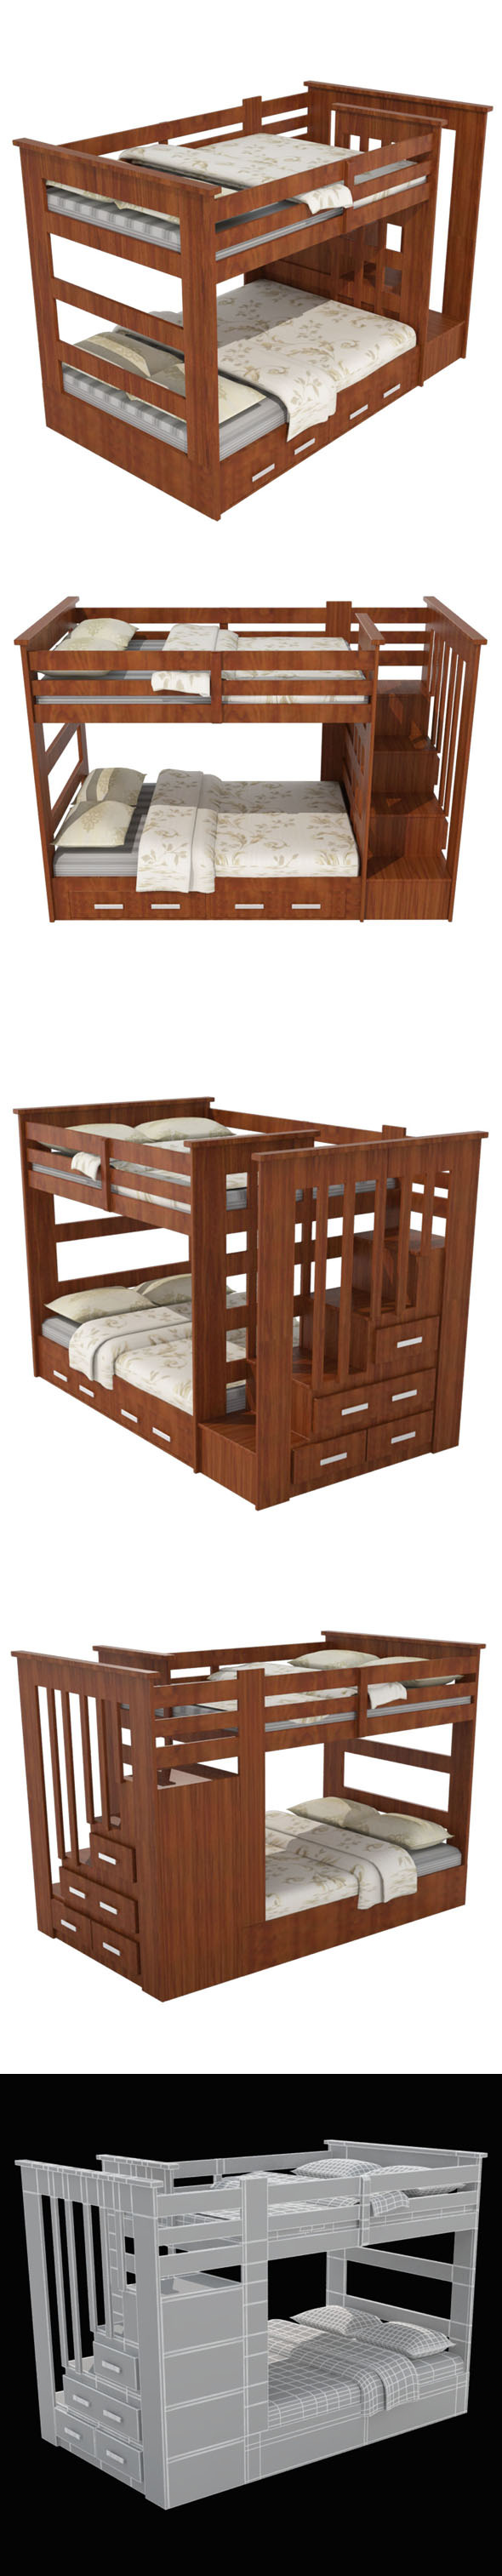 3DOcean Child Bed 1 11628968